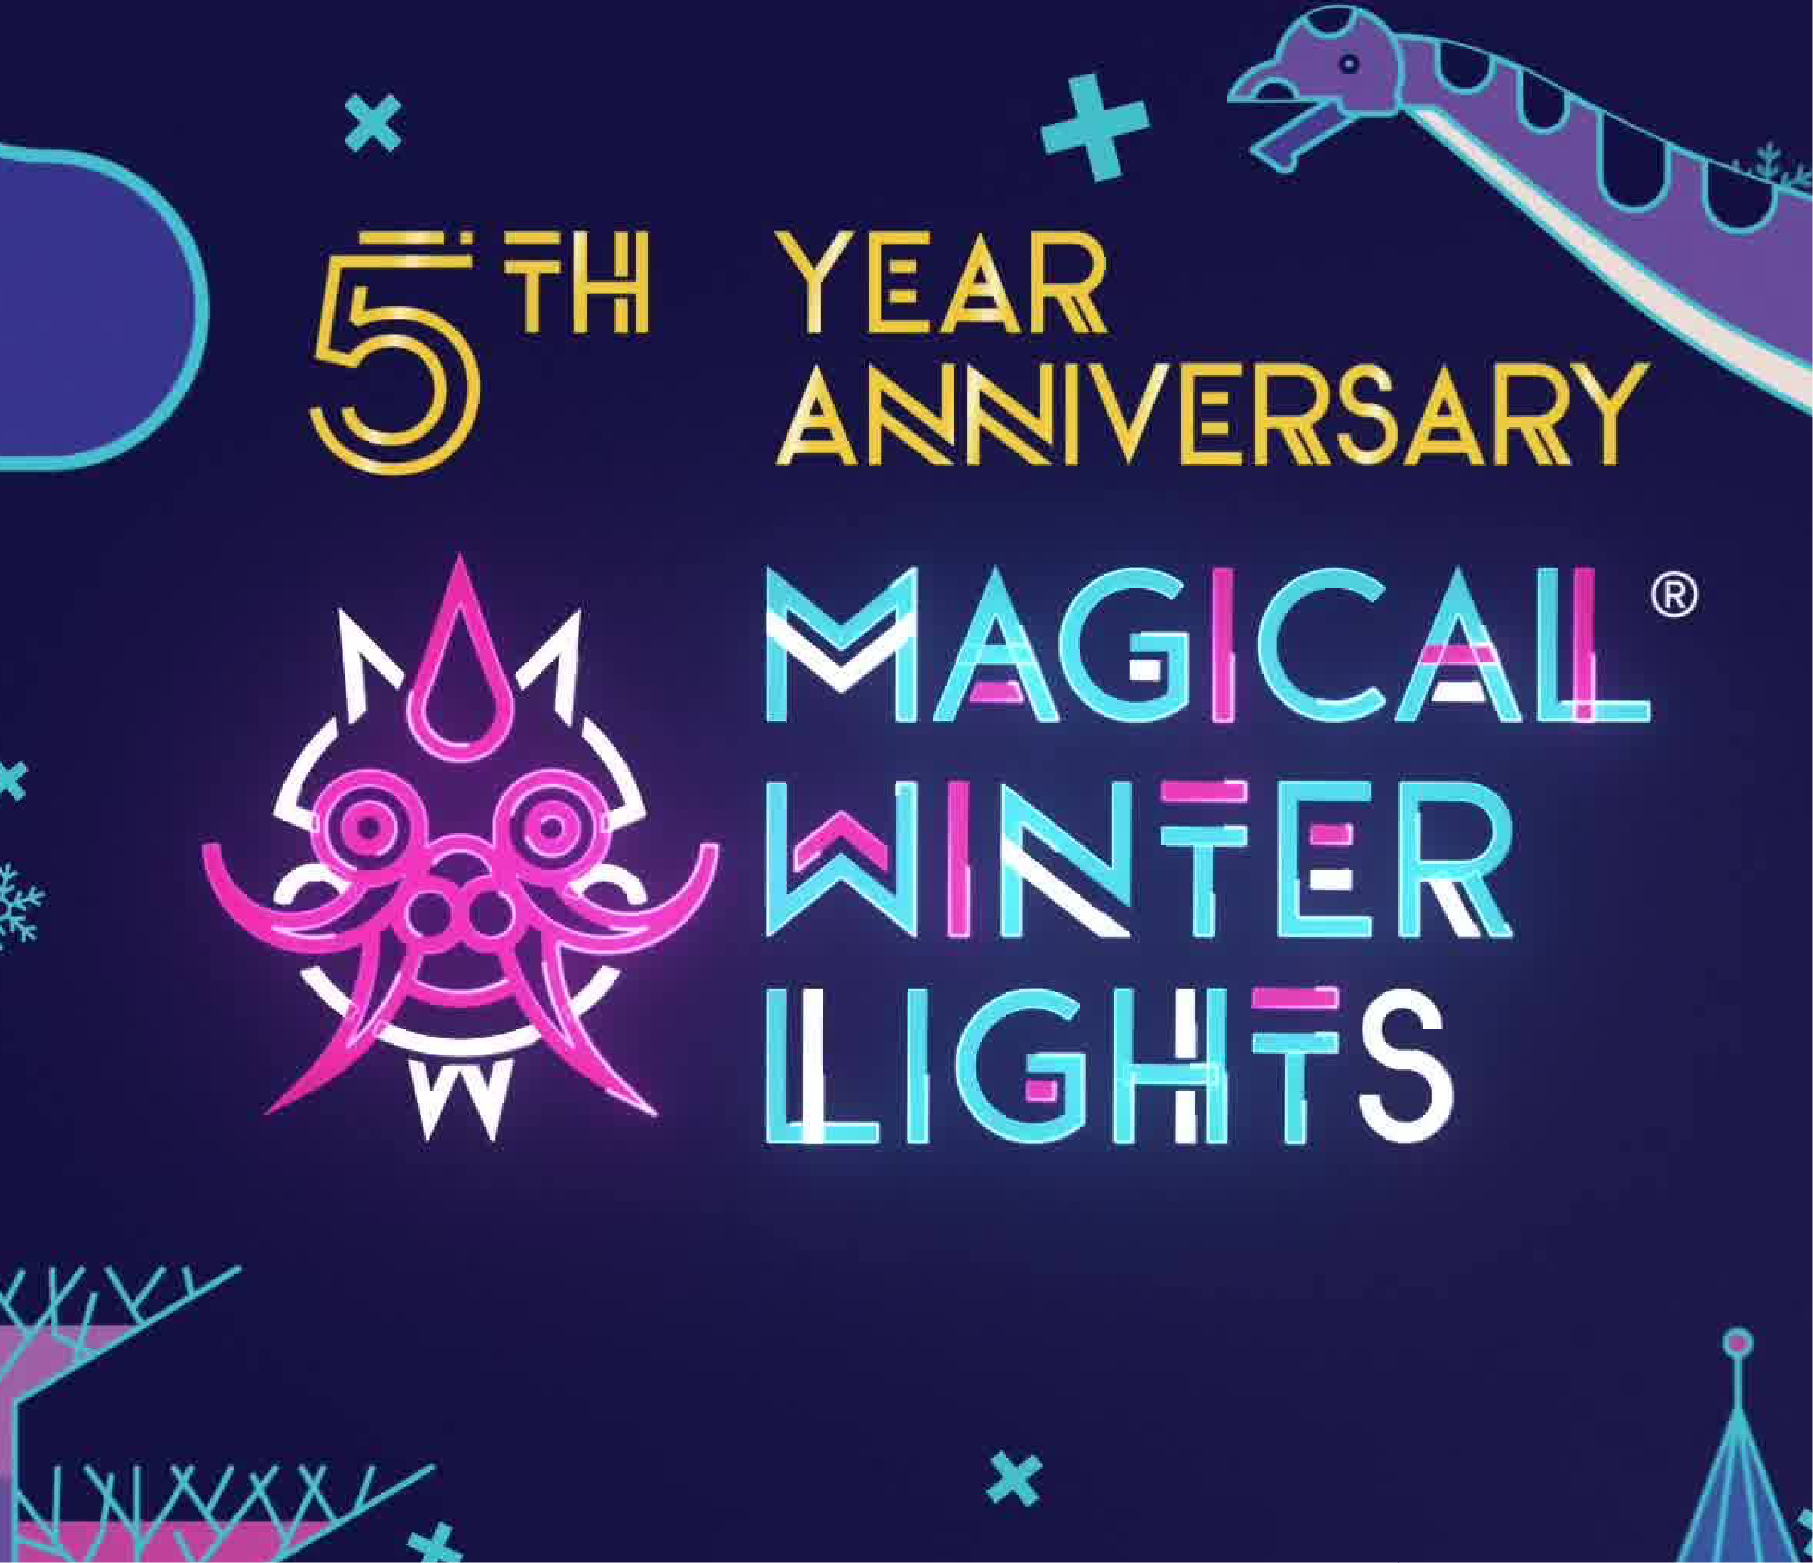 Magical Winter Lights logo with five year anniversary logo